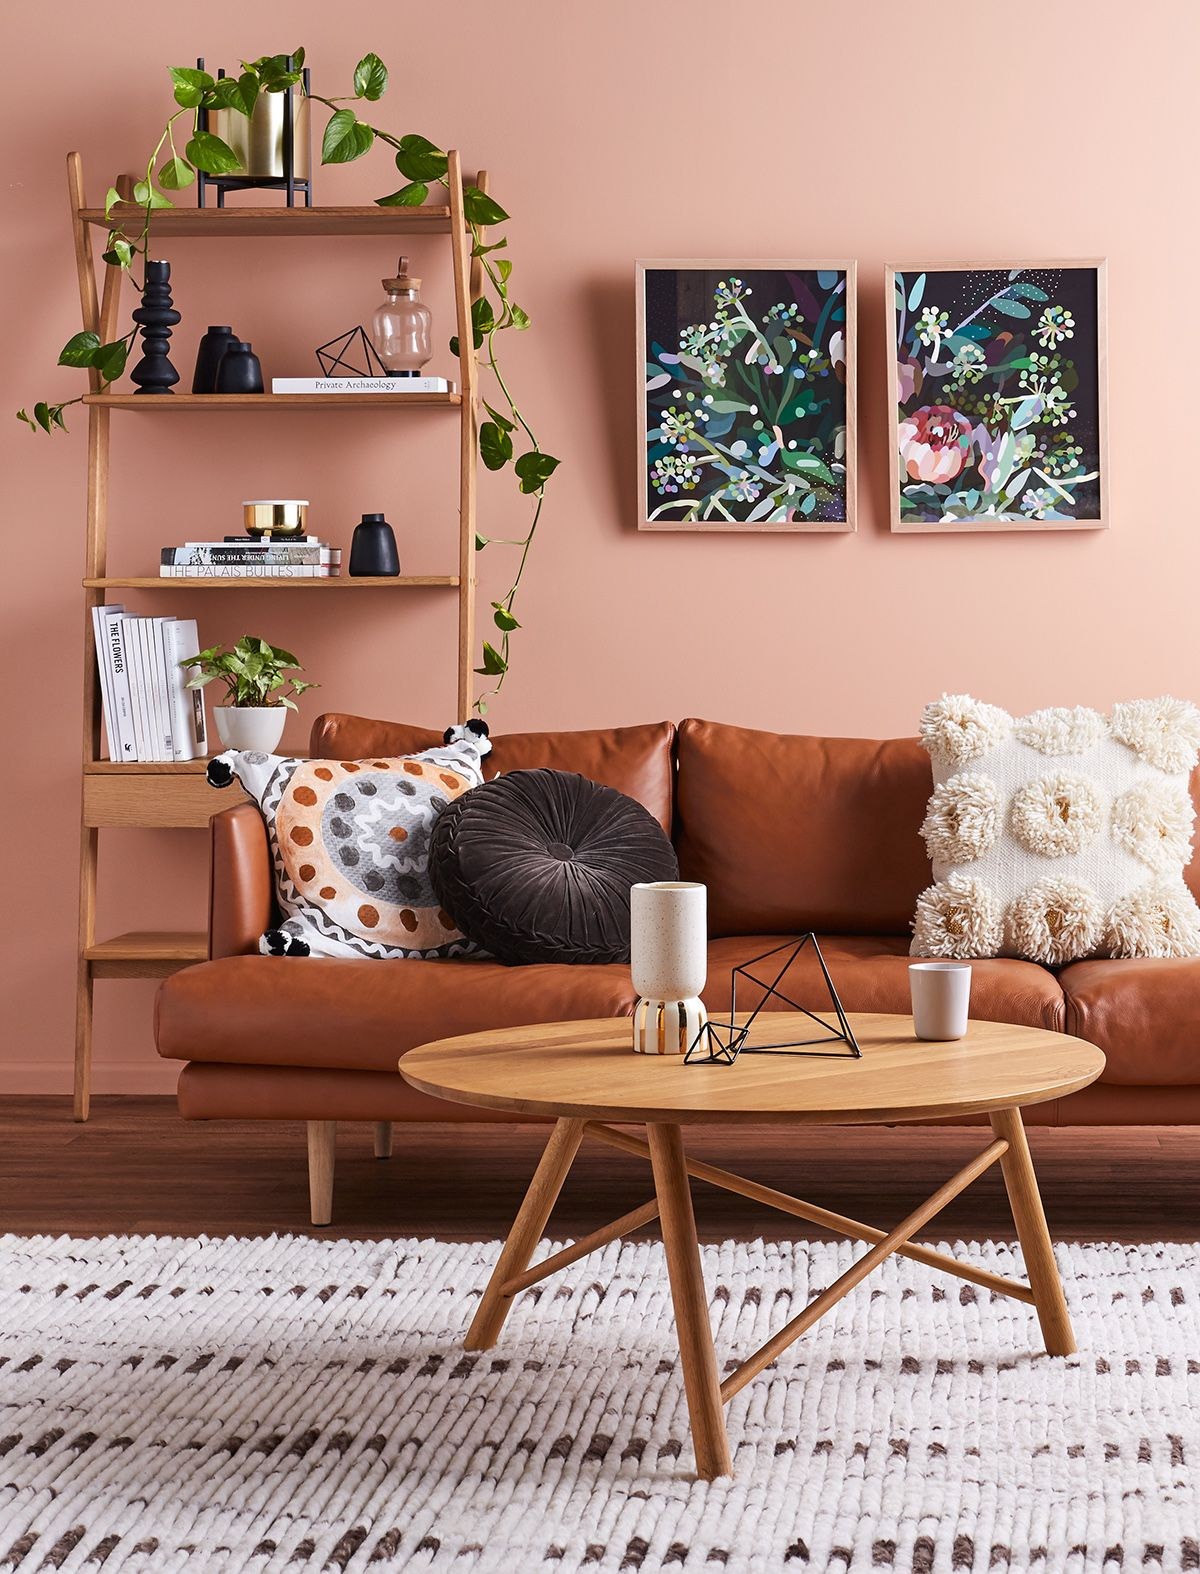 Peachy room idea Photography styling